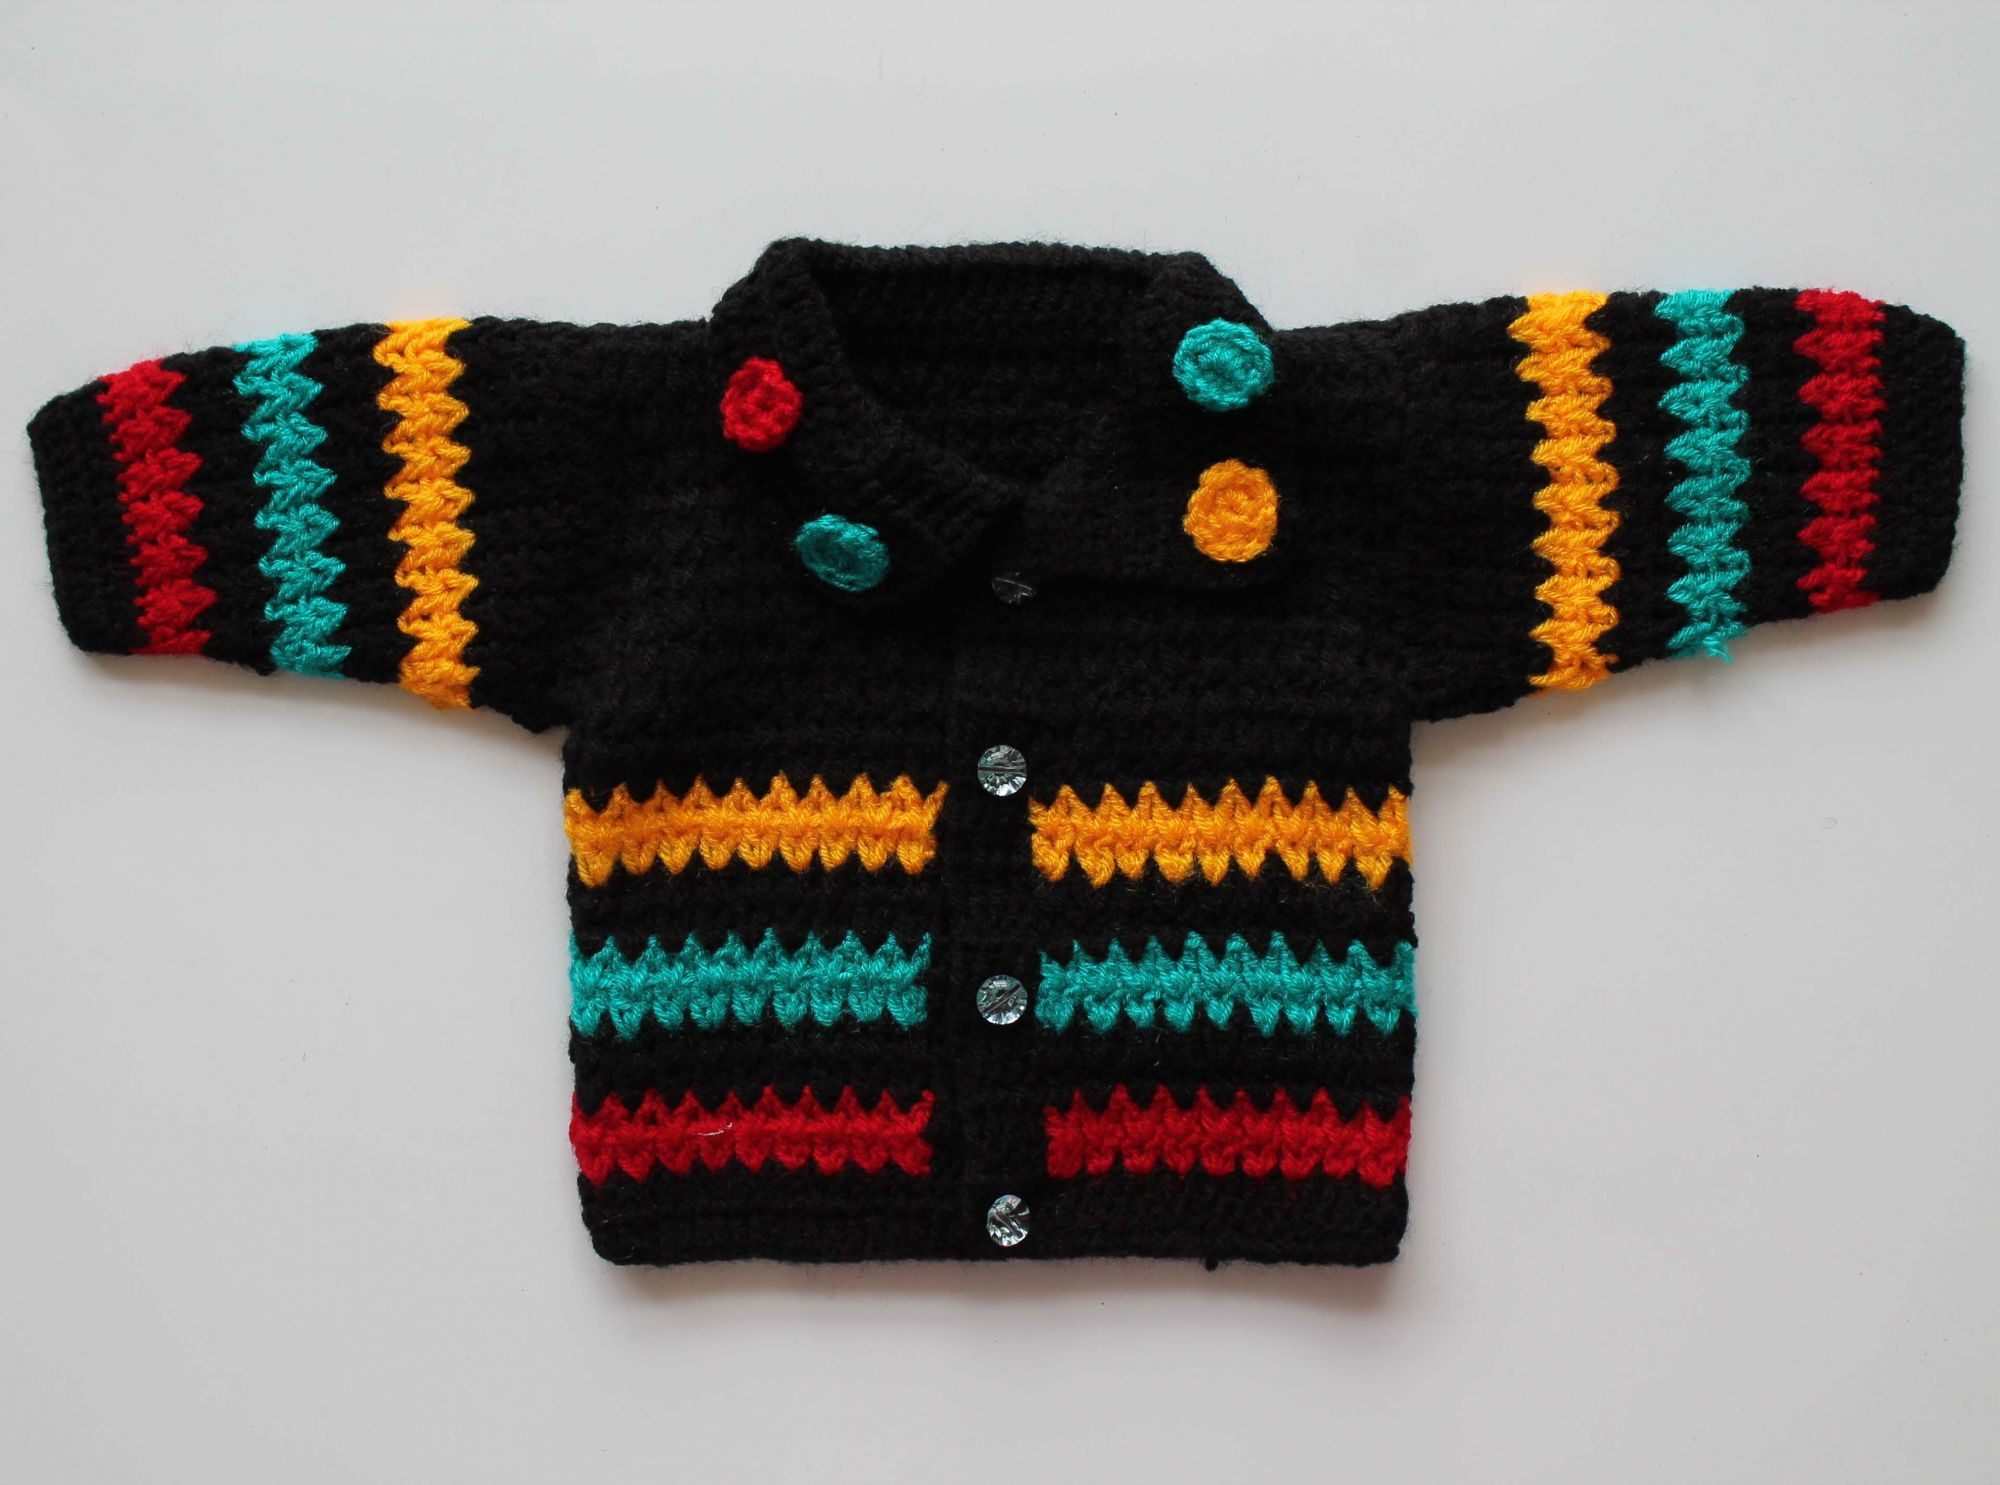 Woonie Handmade Black Striped Sweater for Kids